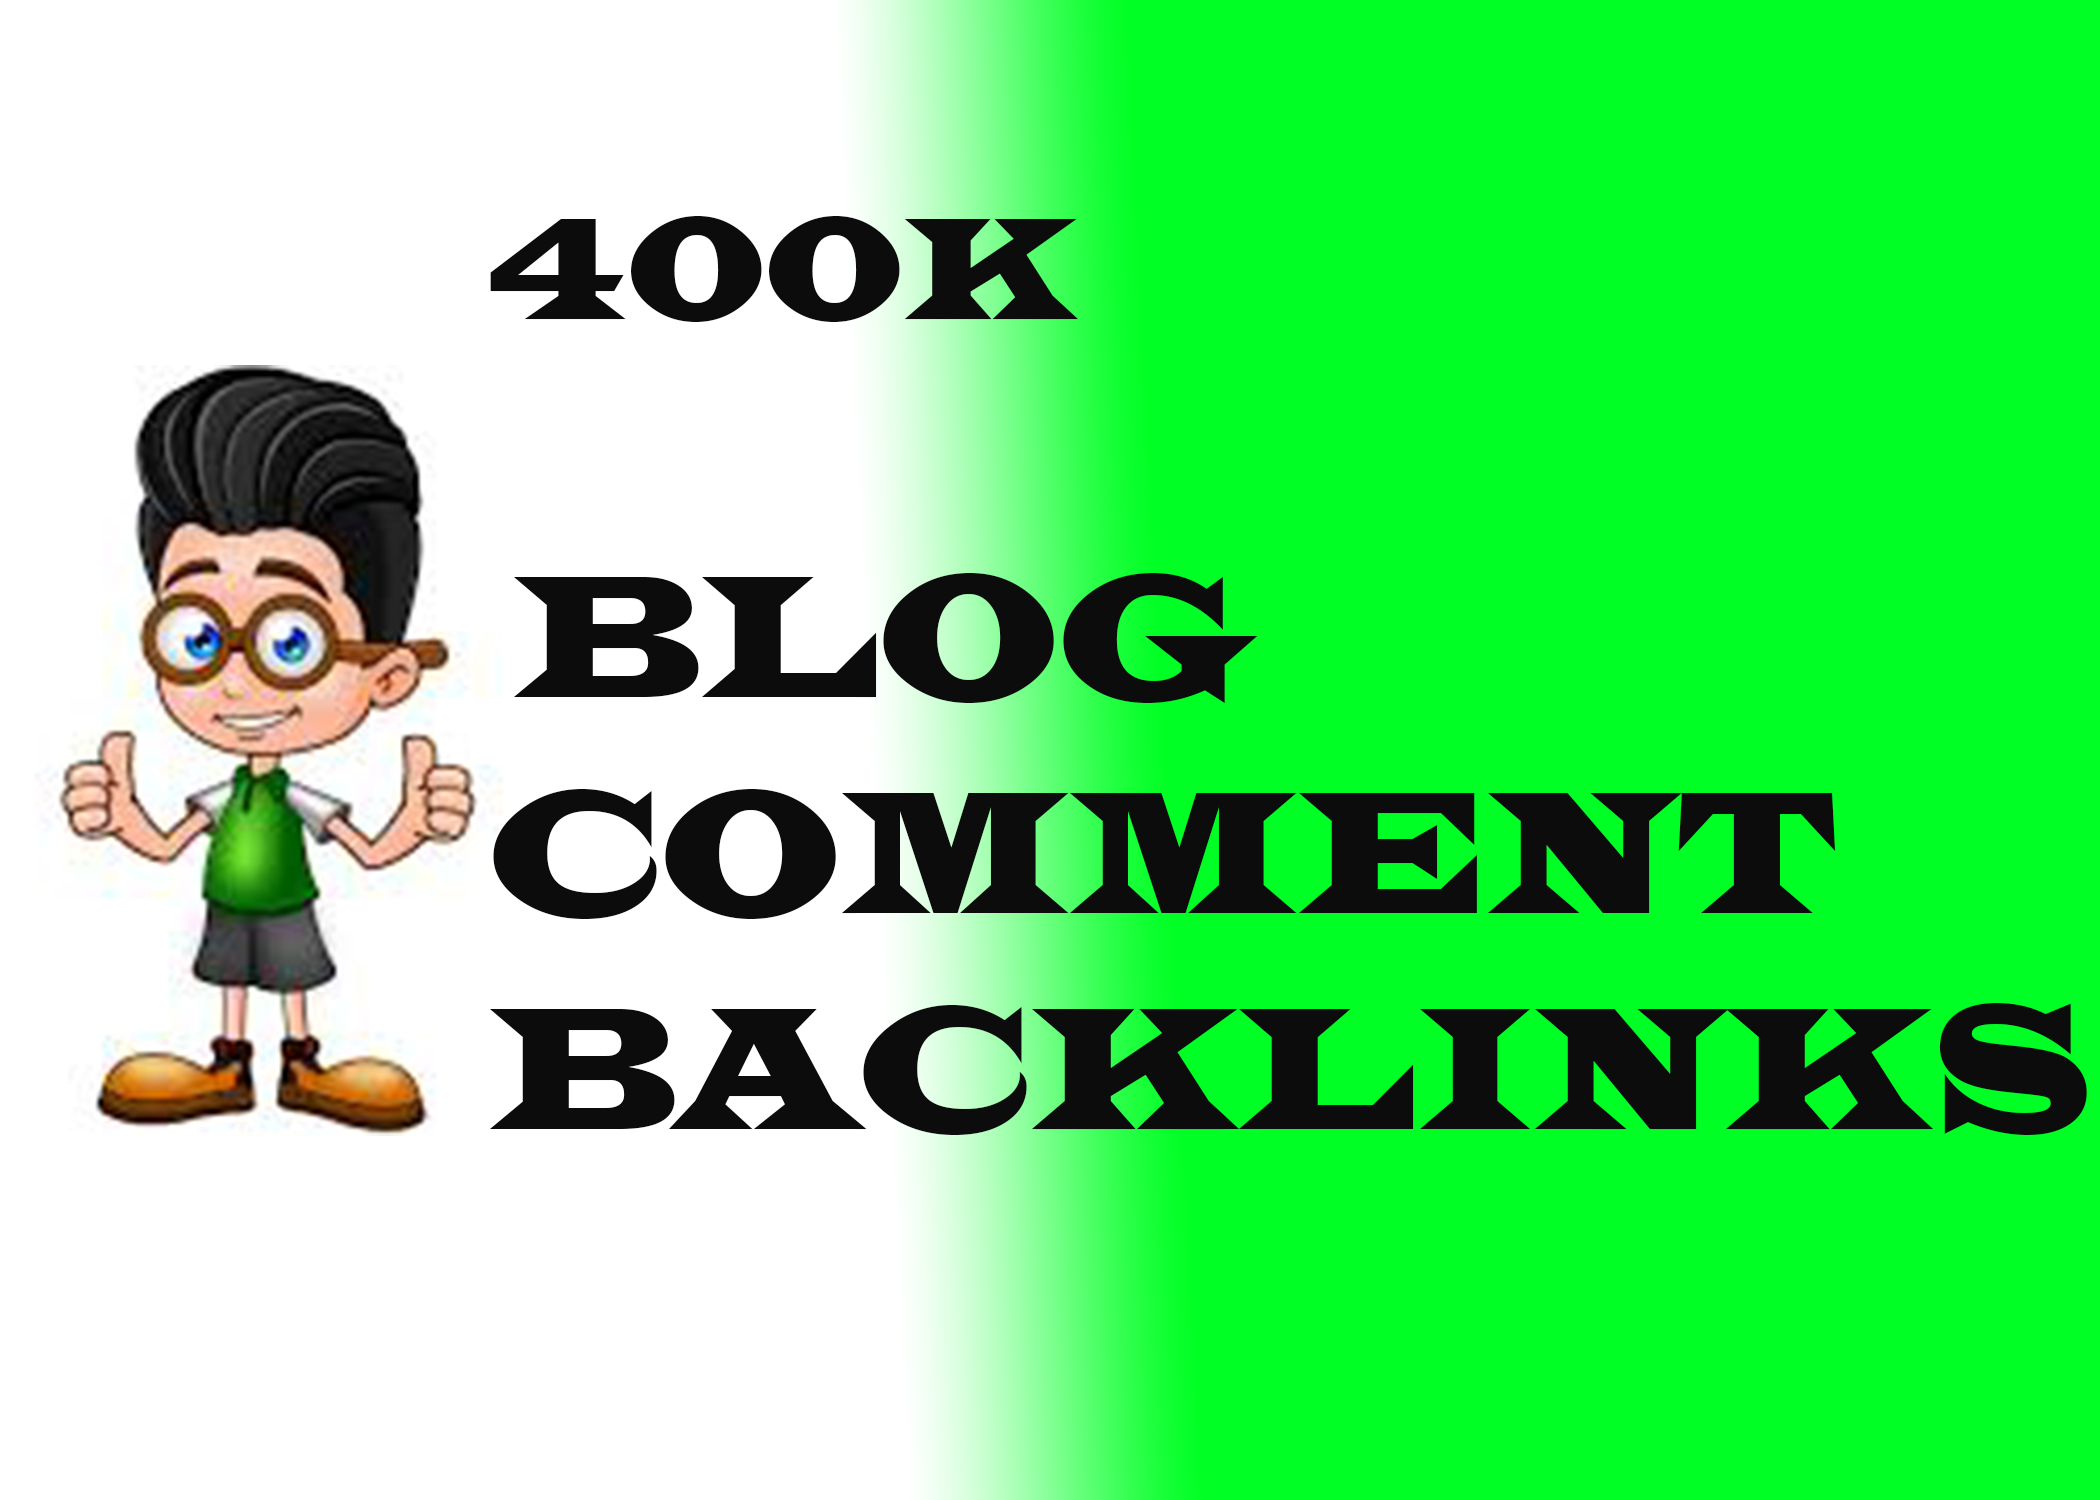 400k GSA Blog Comments High Quality Backlinks For Google Ranking